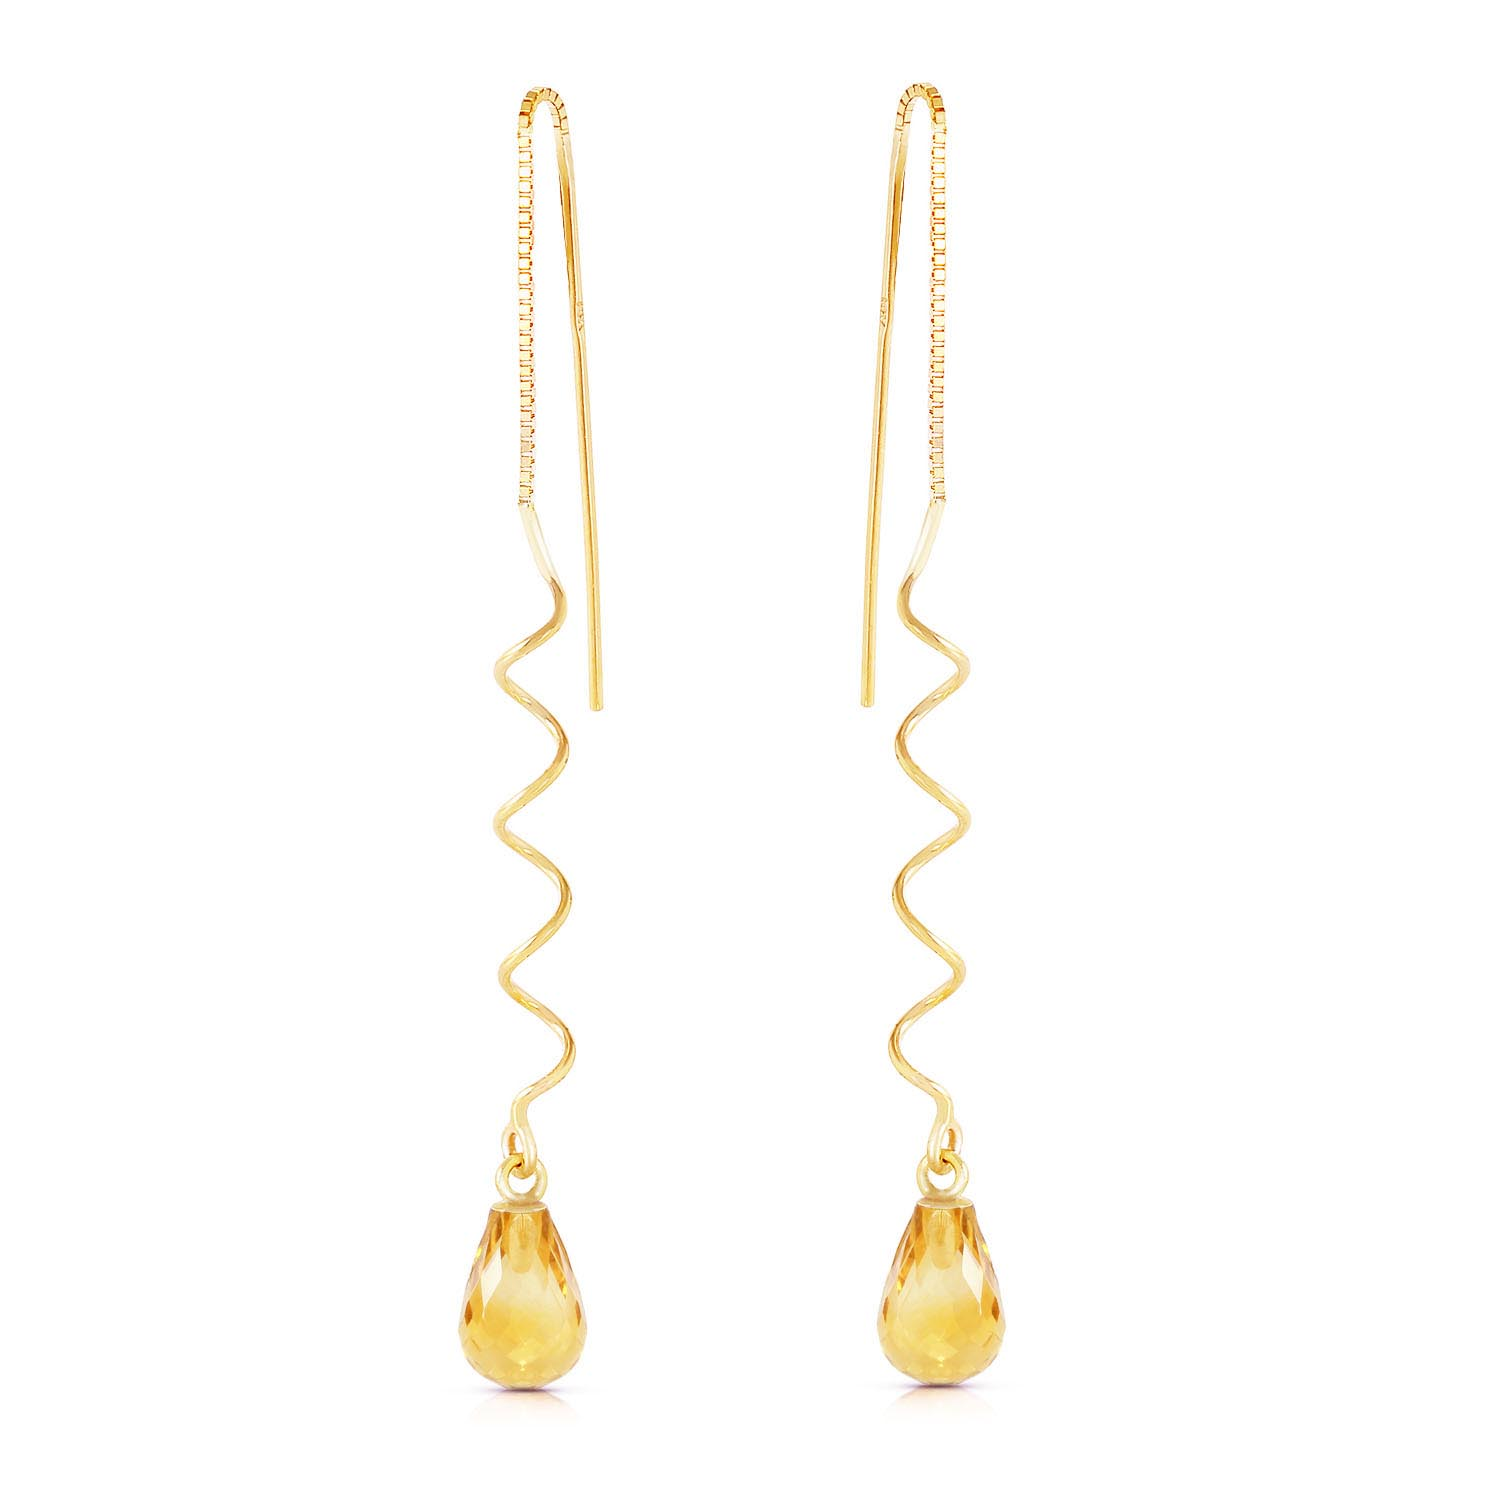 Citrine Spiral Scintilla Briolette Earrings 3.3ctw in 9ct Gold